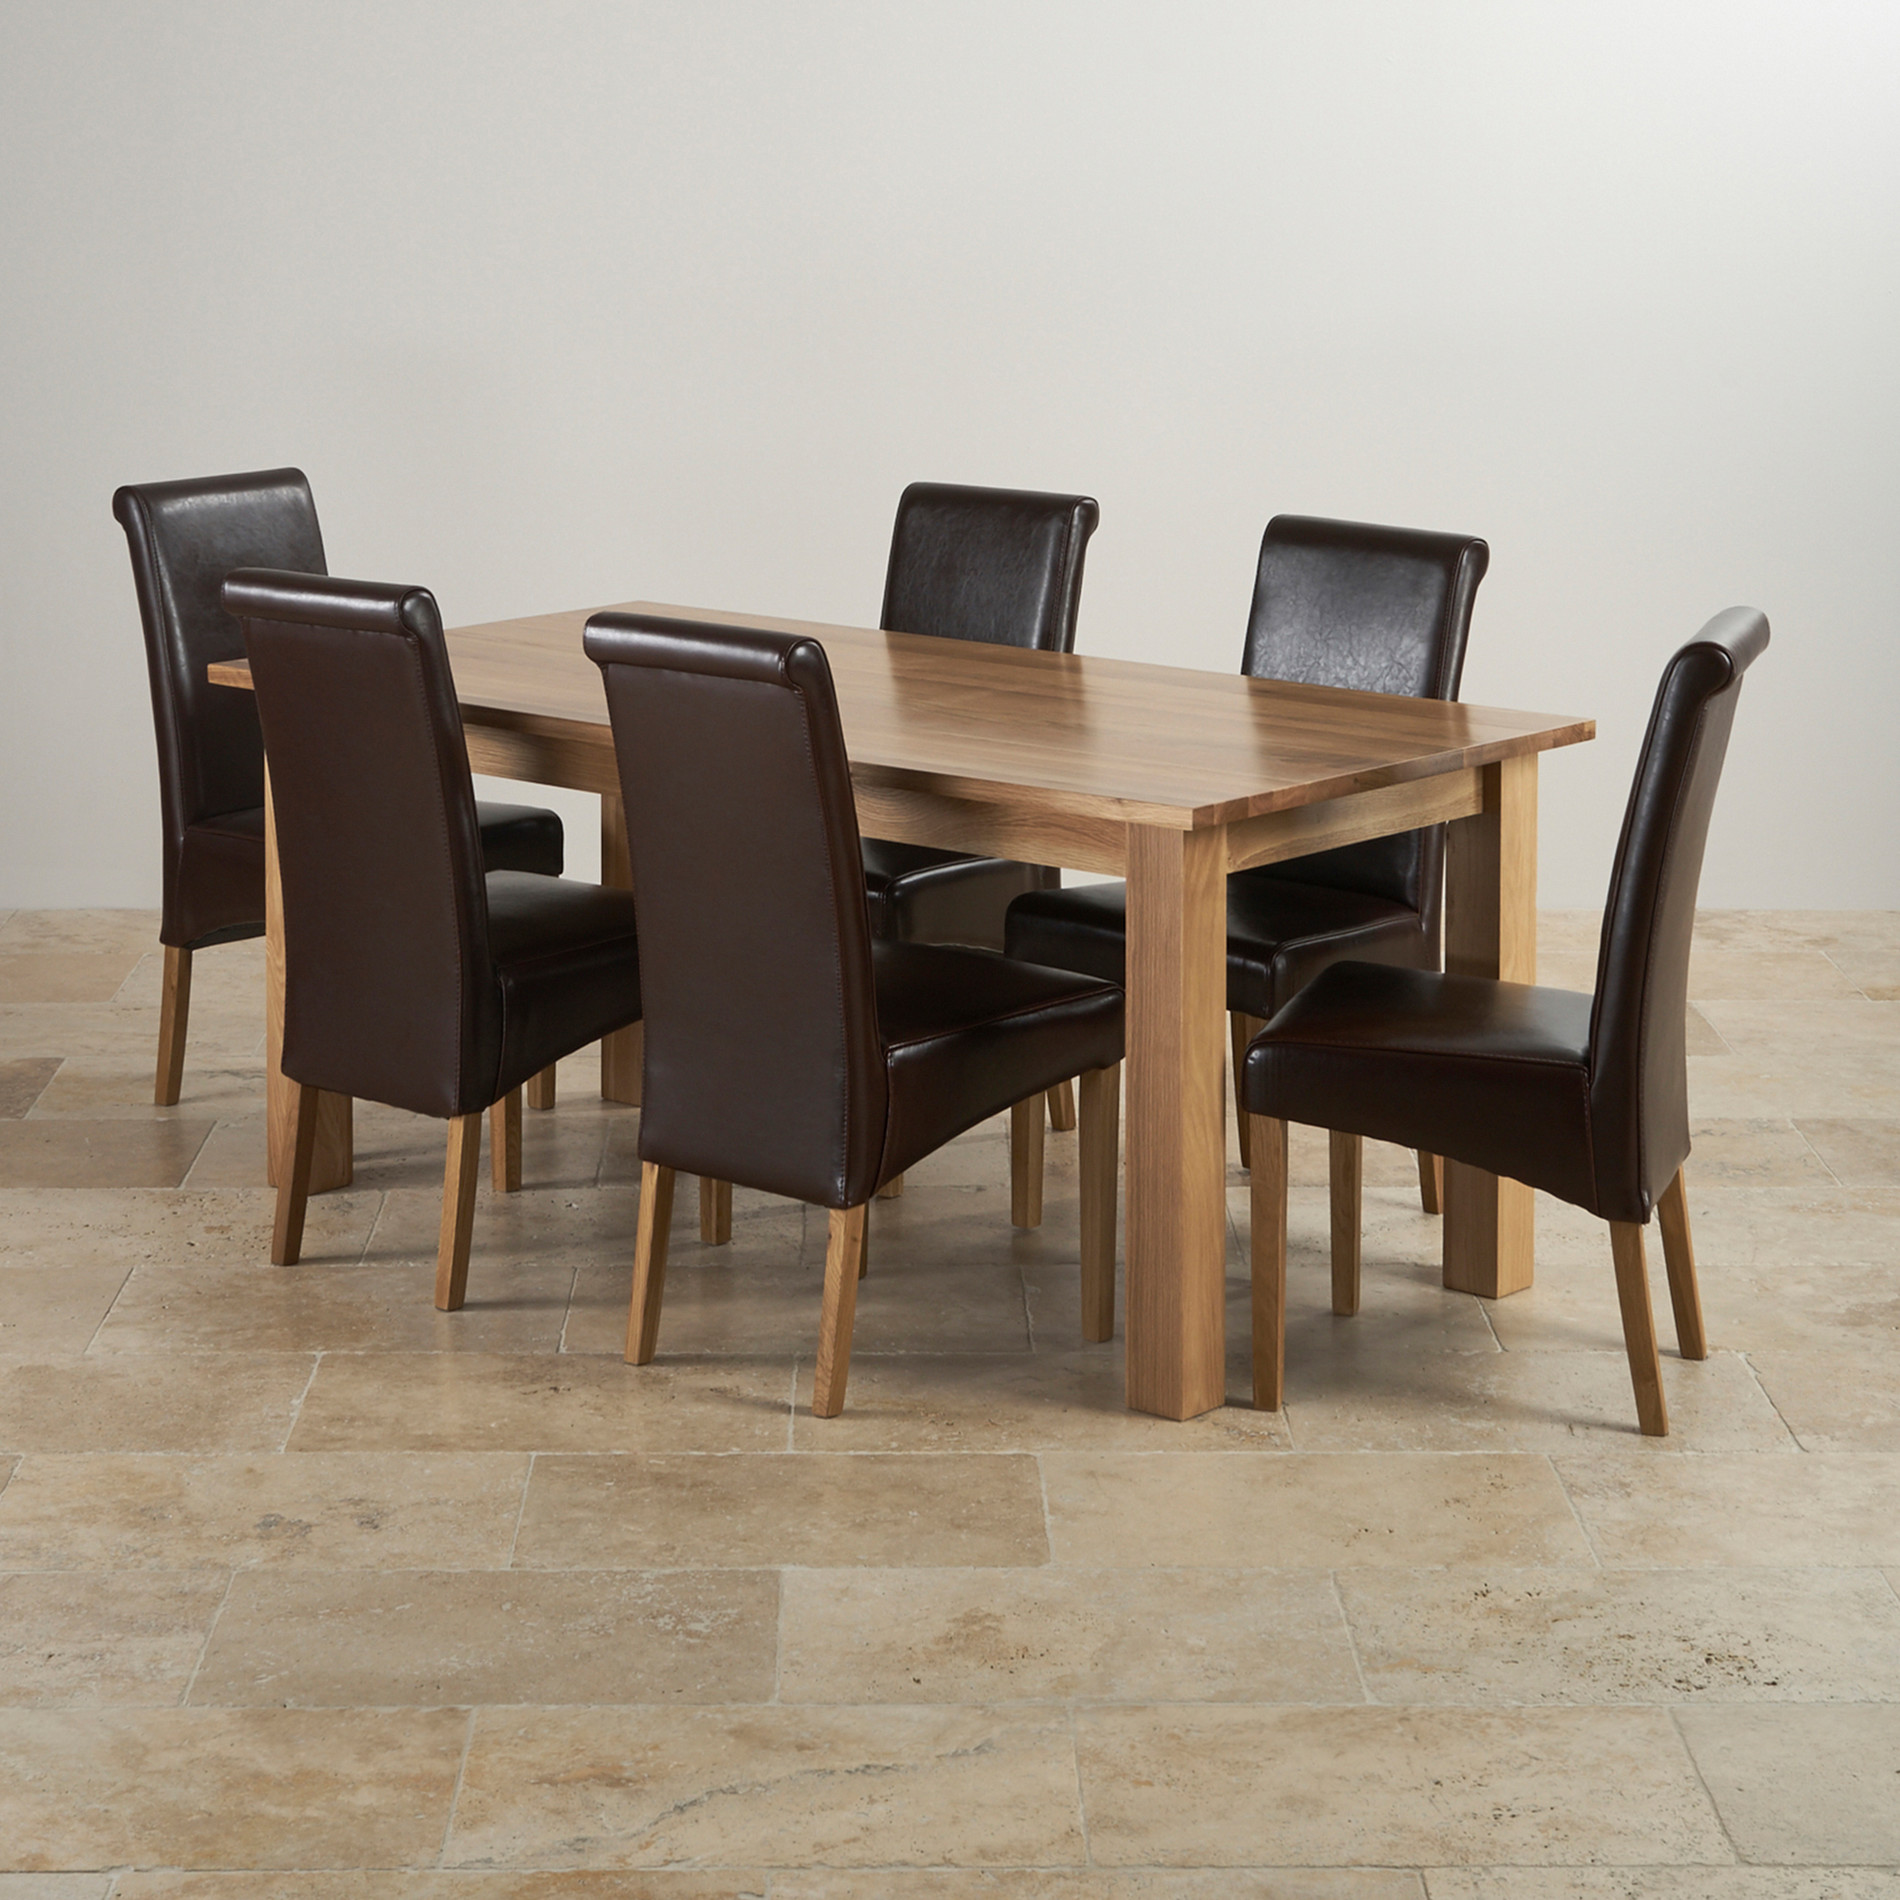 Contemporary Dining Set In Natural Oak Dining Tables And  : contemporary natural solid oak dining set 6ft table with 6 scroll back brown leather chairs 574ebf999f7b6 from elivingroomfurniture.com size 1900 x 1900 jpeg 597kB